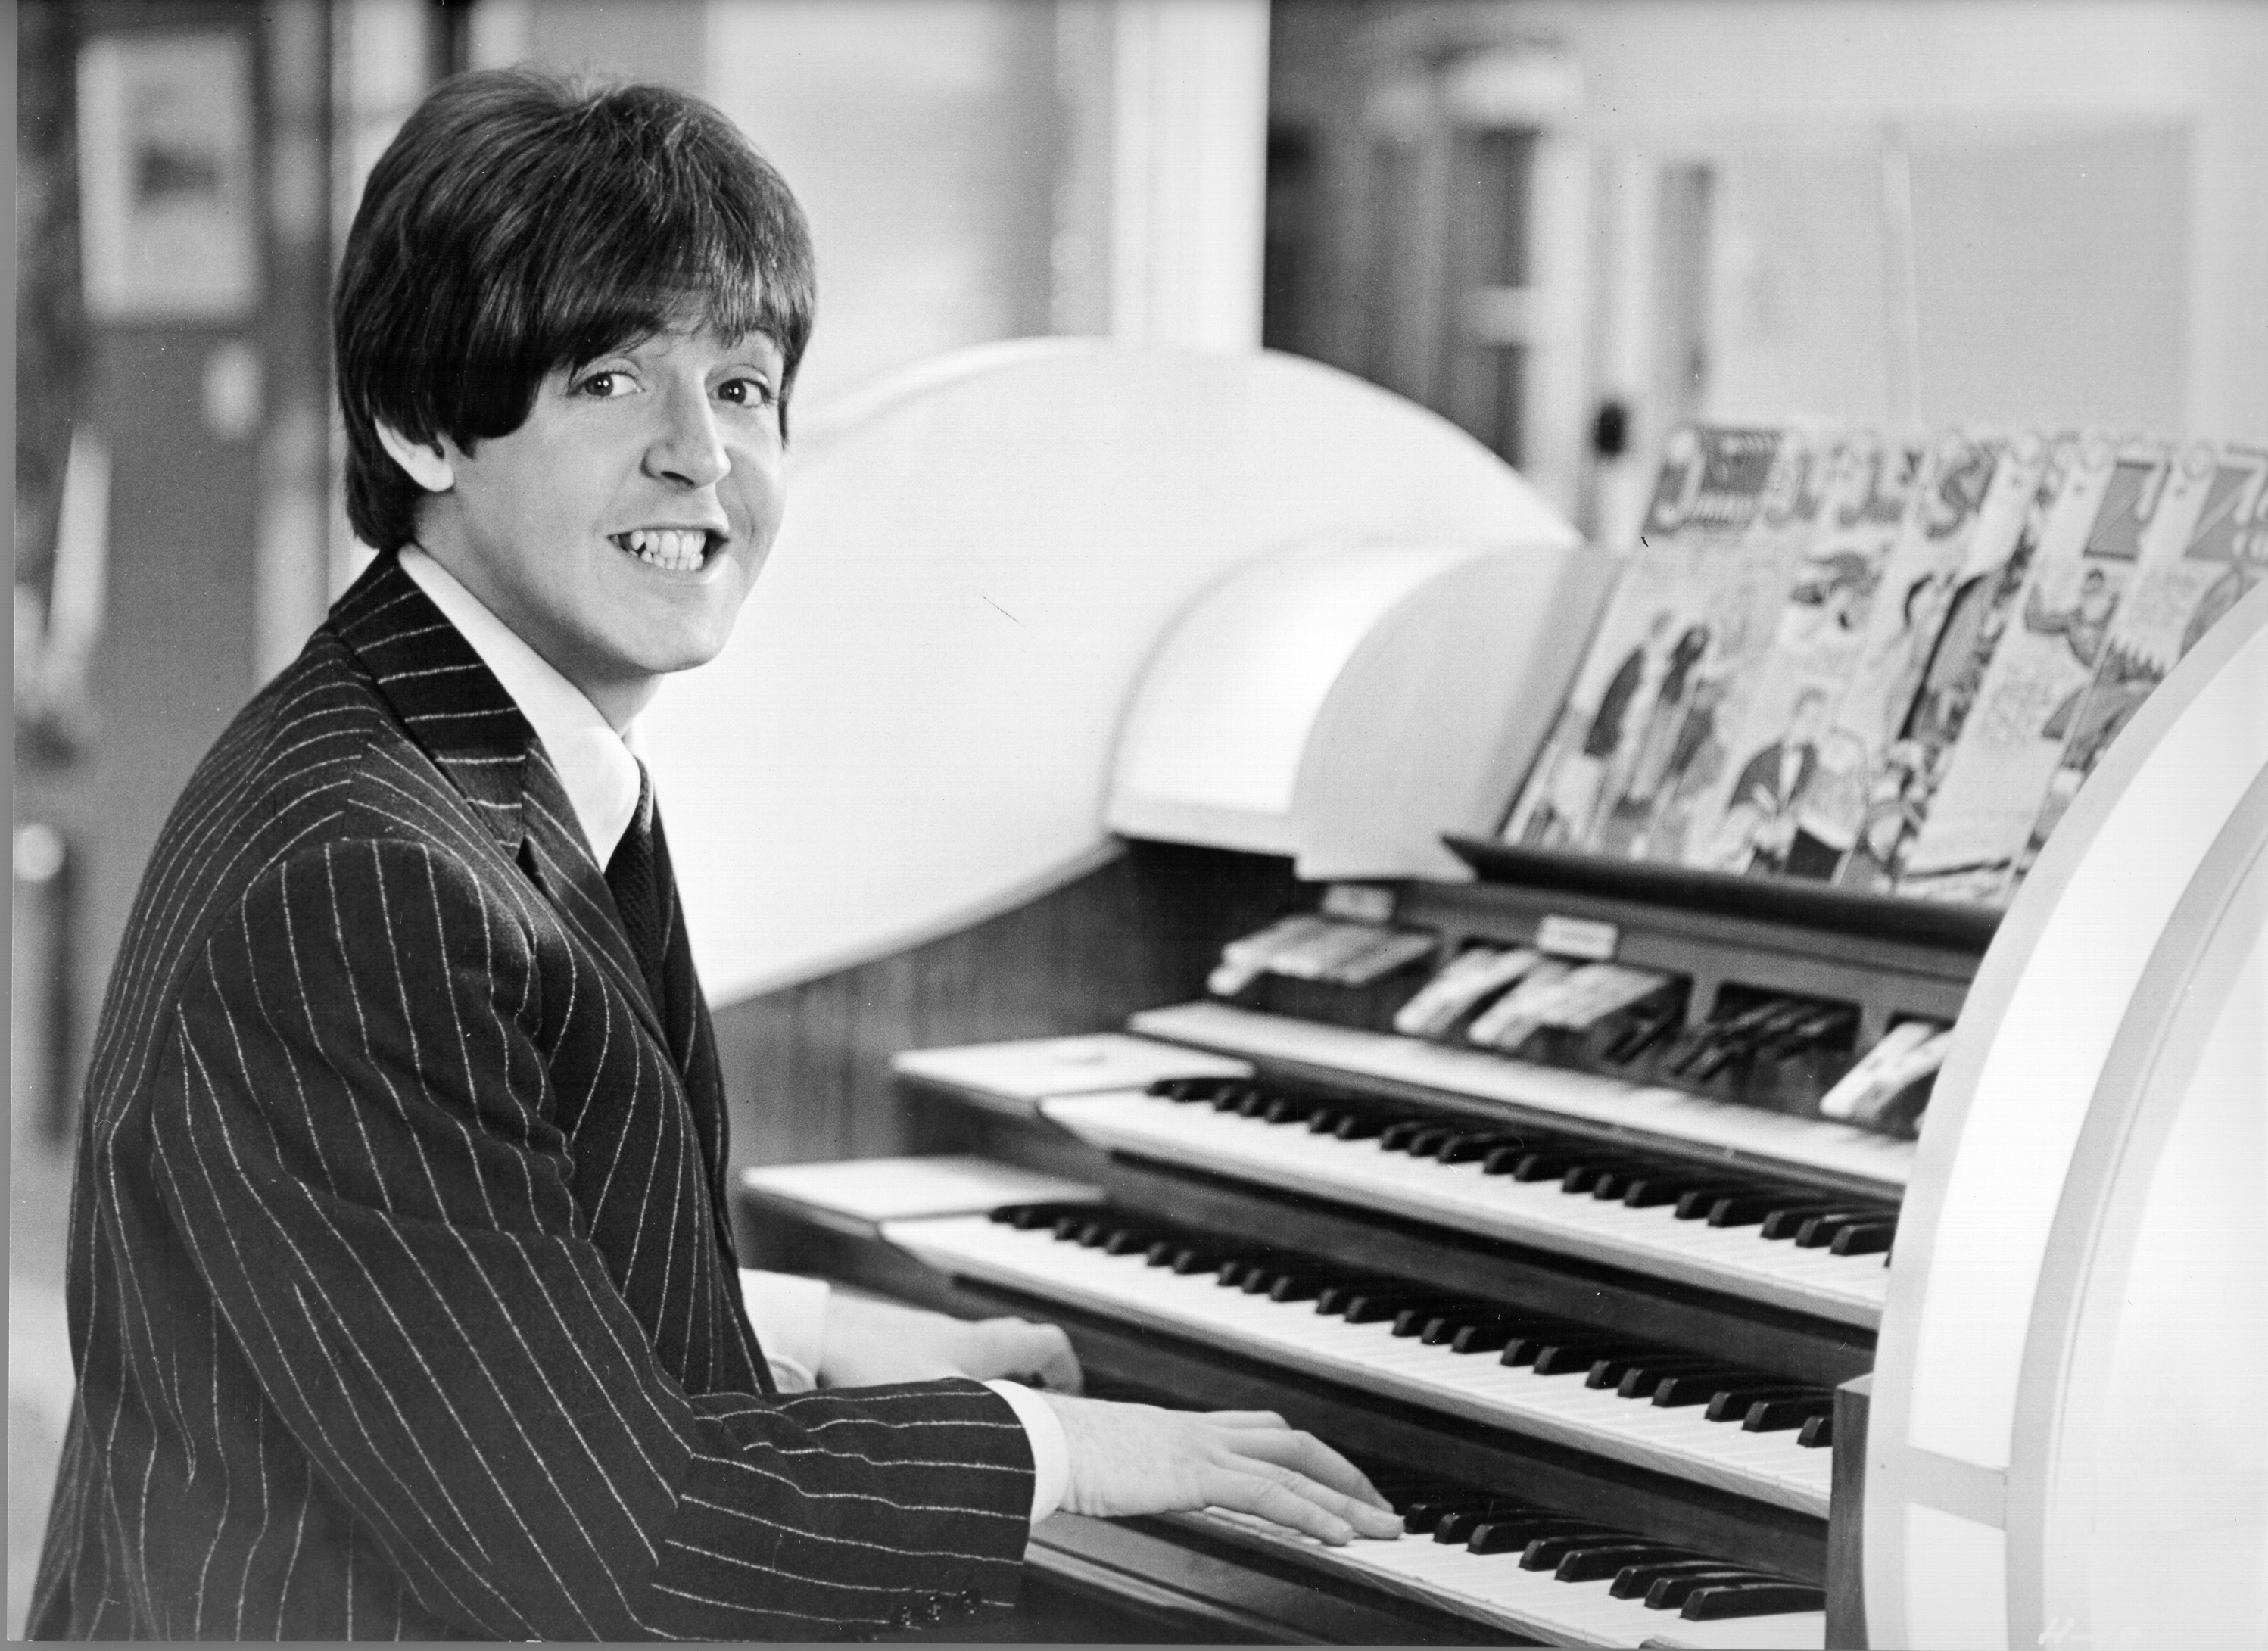 Paul on Drums, George on Bass: 10 Great Beatles Instrument Swaps